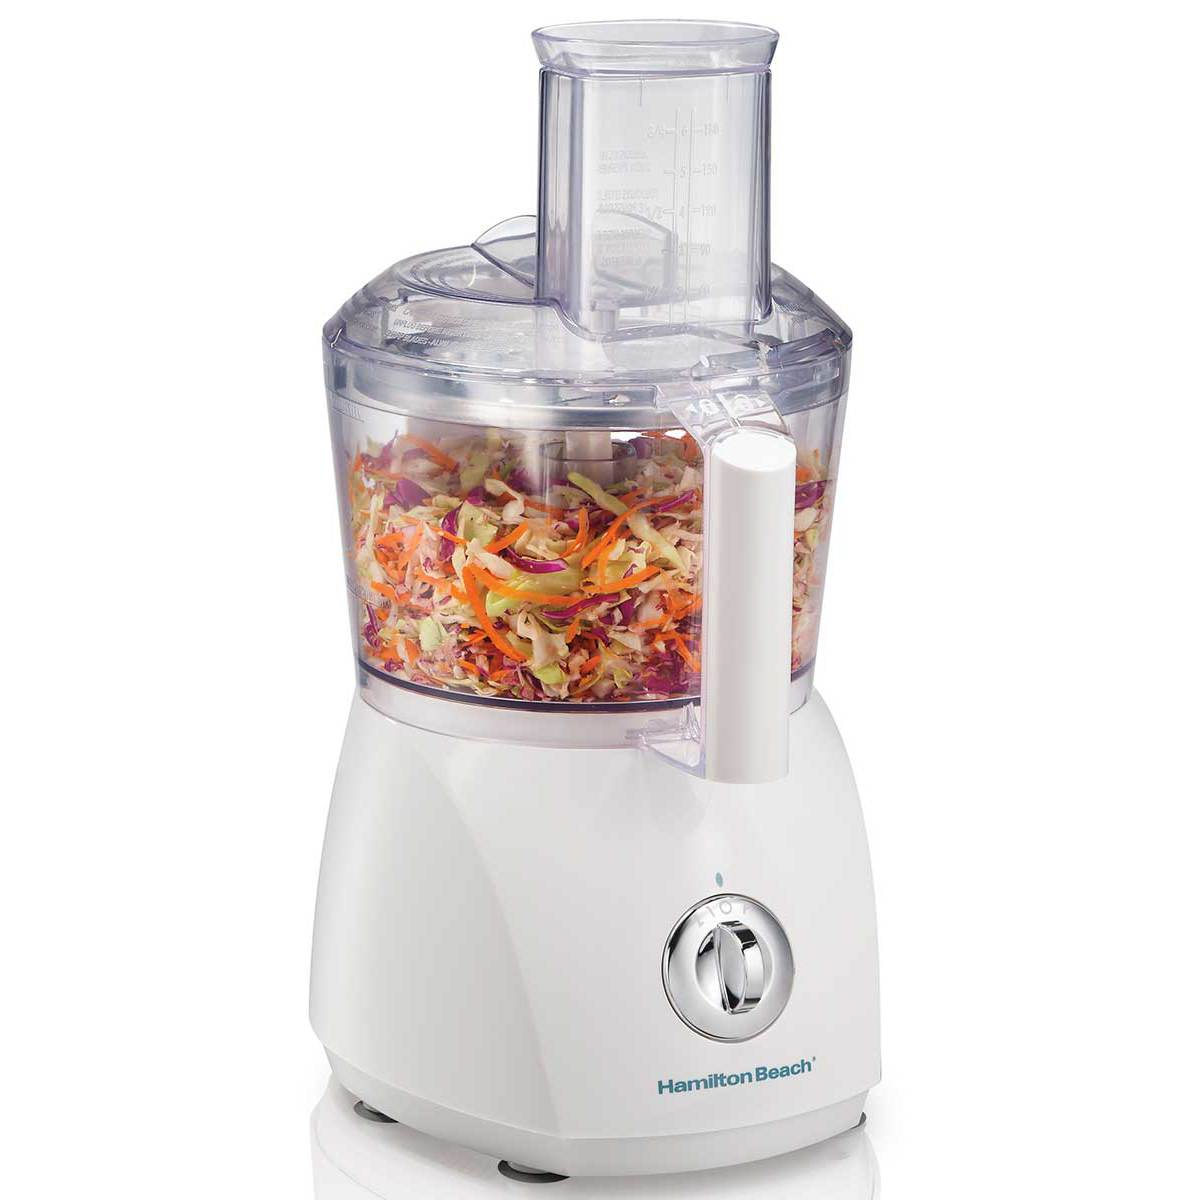 ChefPrep™ 500 Watt Food Processor - White (70610)